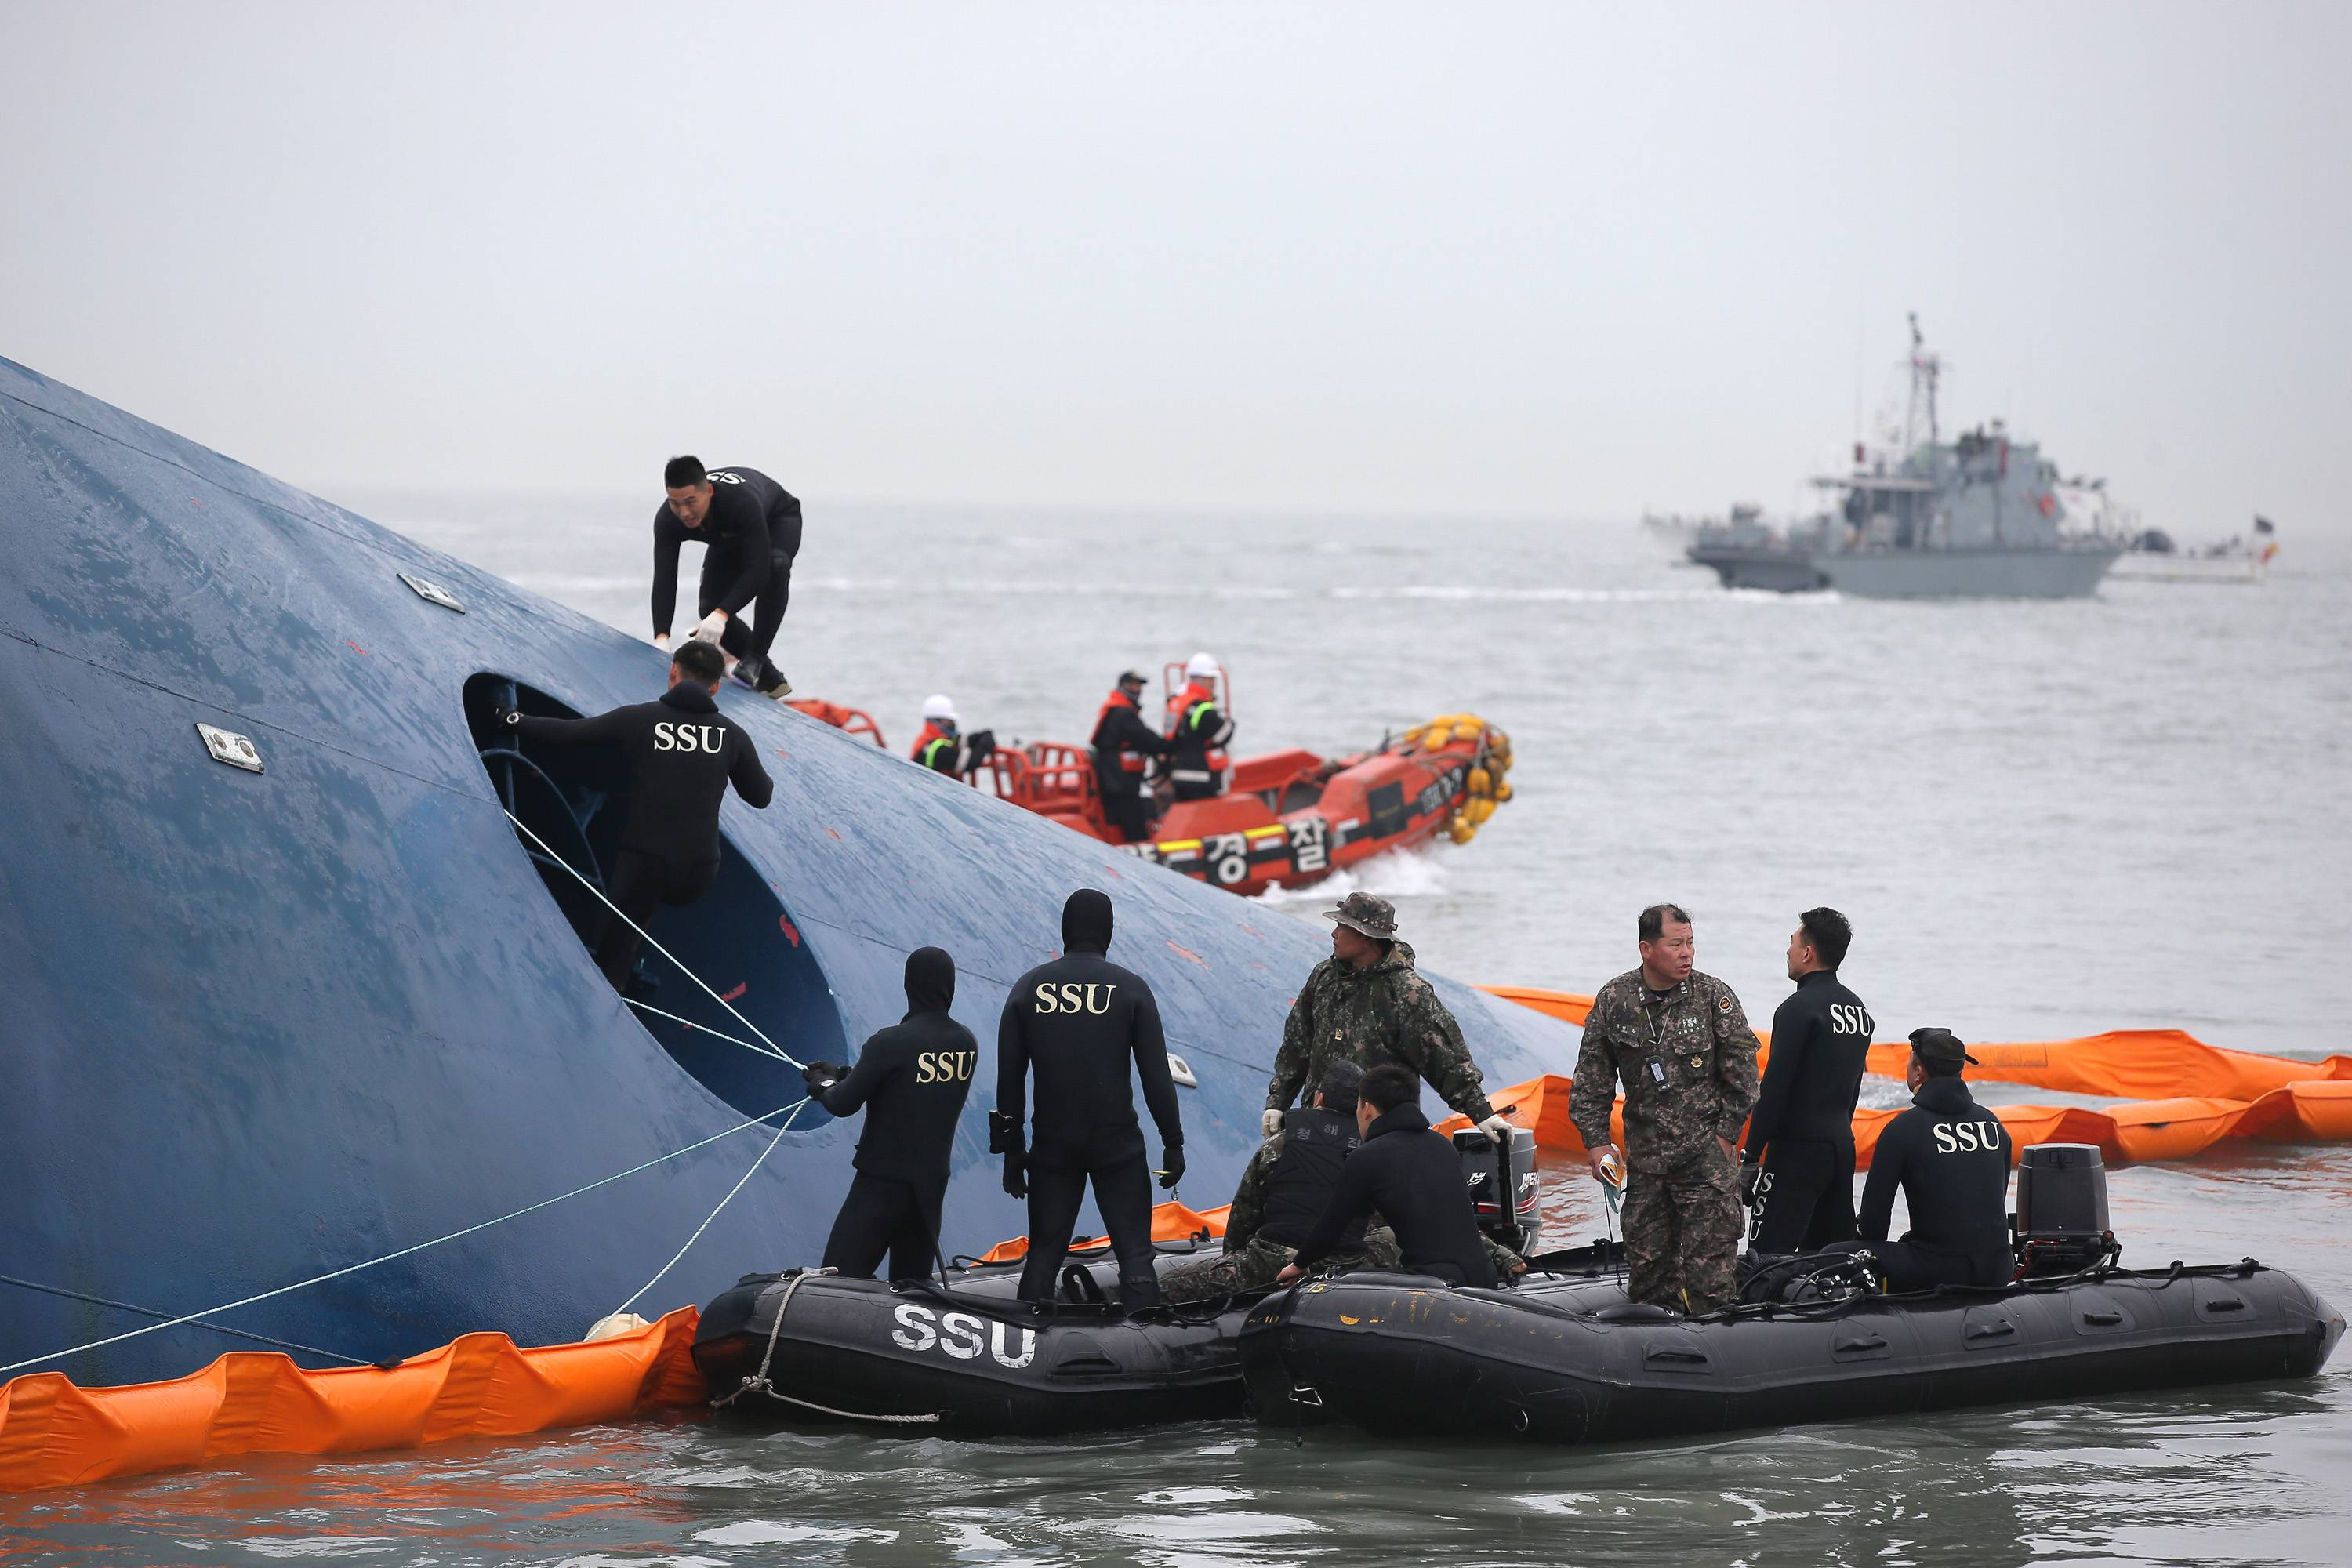 South Korean rescue team members search for passengers aboard a ferry sinking off South Korea's southern coast, in the water off the southern coast near Jindo, south of Seoul, South Korea, Thursday. Fears rose Thursday for the fate of more than 280 passengers still missing more than 24 hours after their ferry flipped onto its side and filled with water off the southern coast of South Korea.